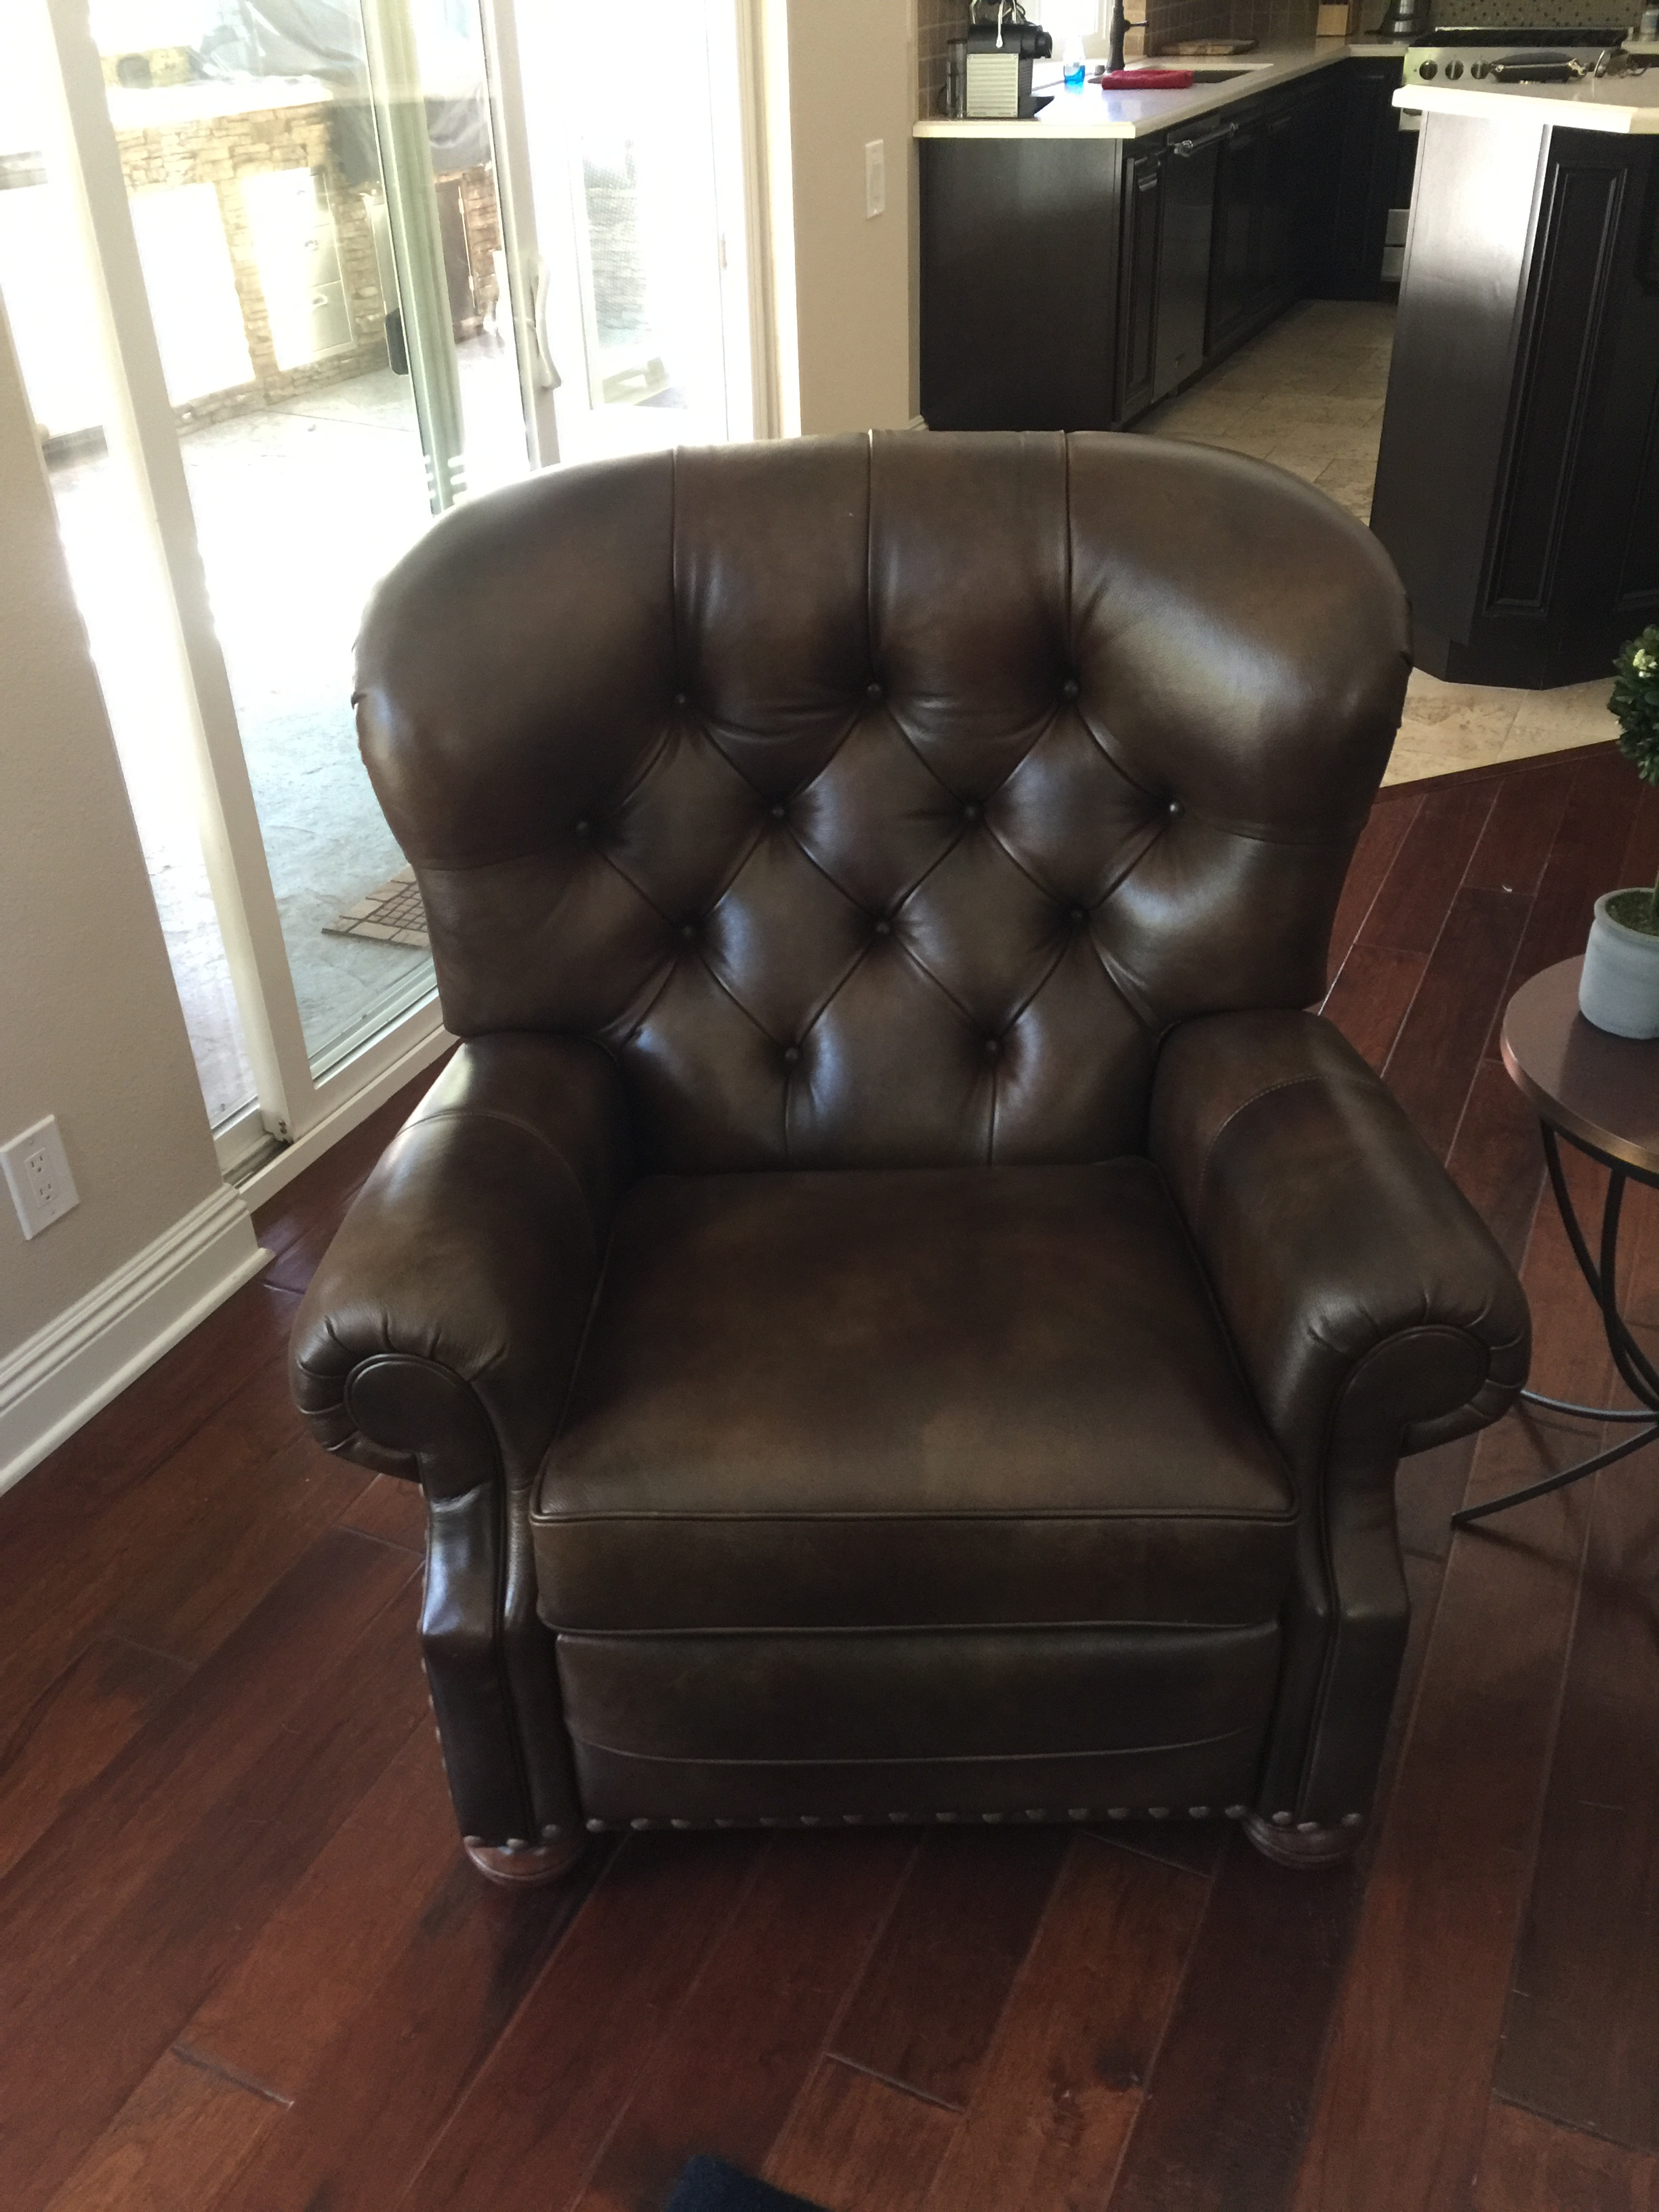 Ethan Allen Cromwell Leather Recliner - Image 2 of 4  sc 1 st  Chairish & Ethan Allen Cromwell Leather Recliner | Chairish islam-shia.org